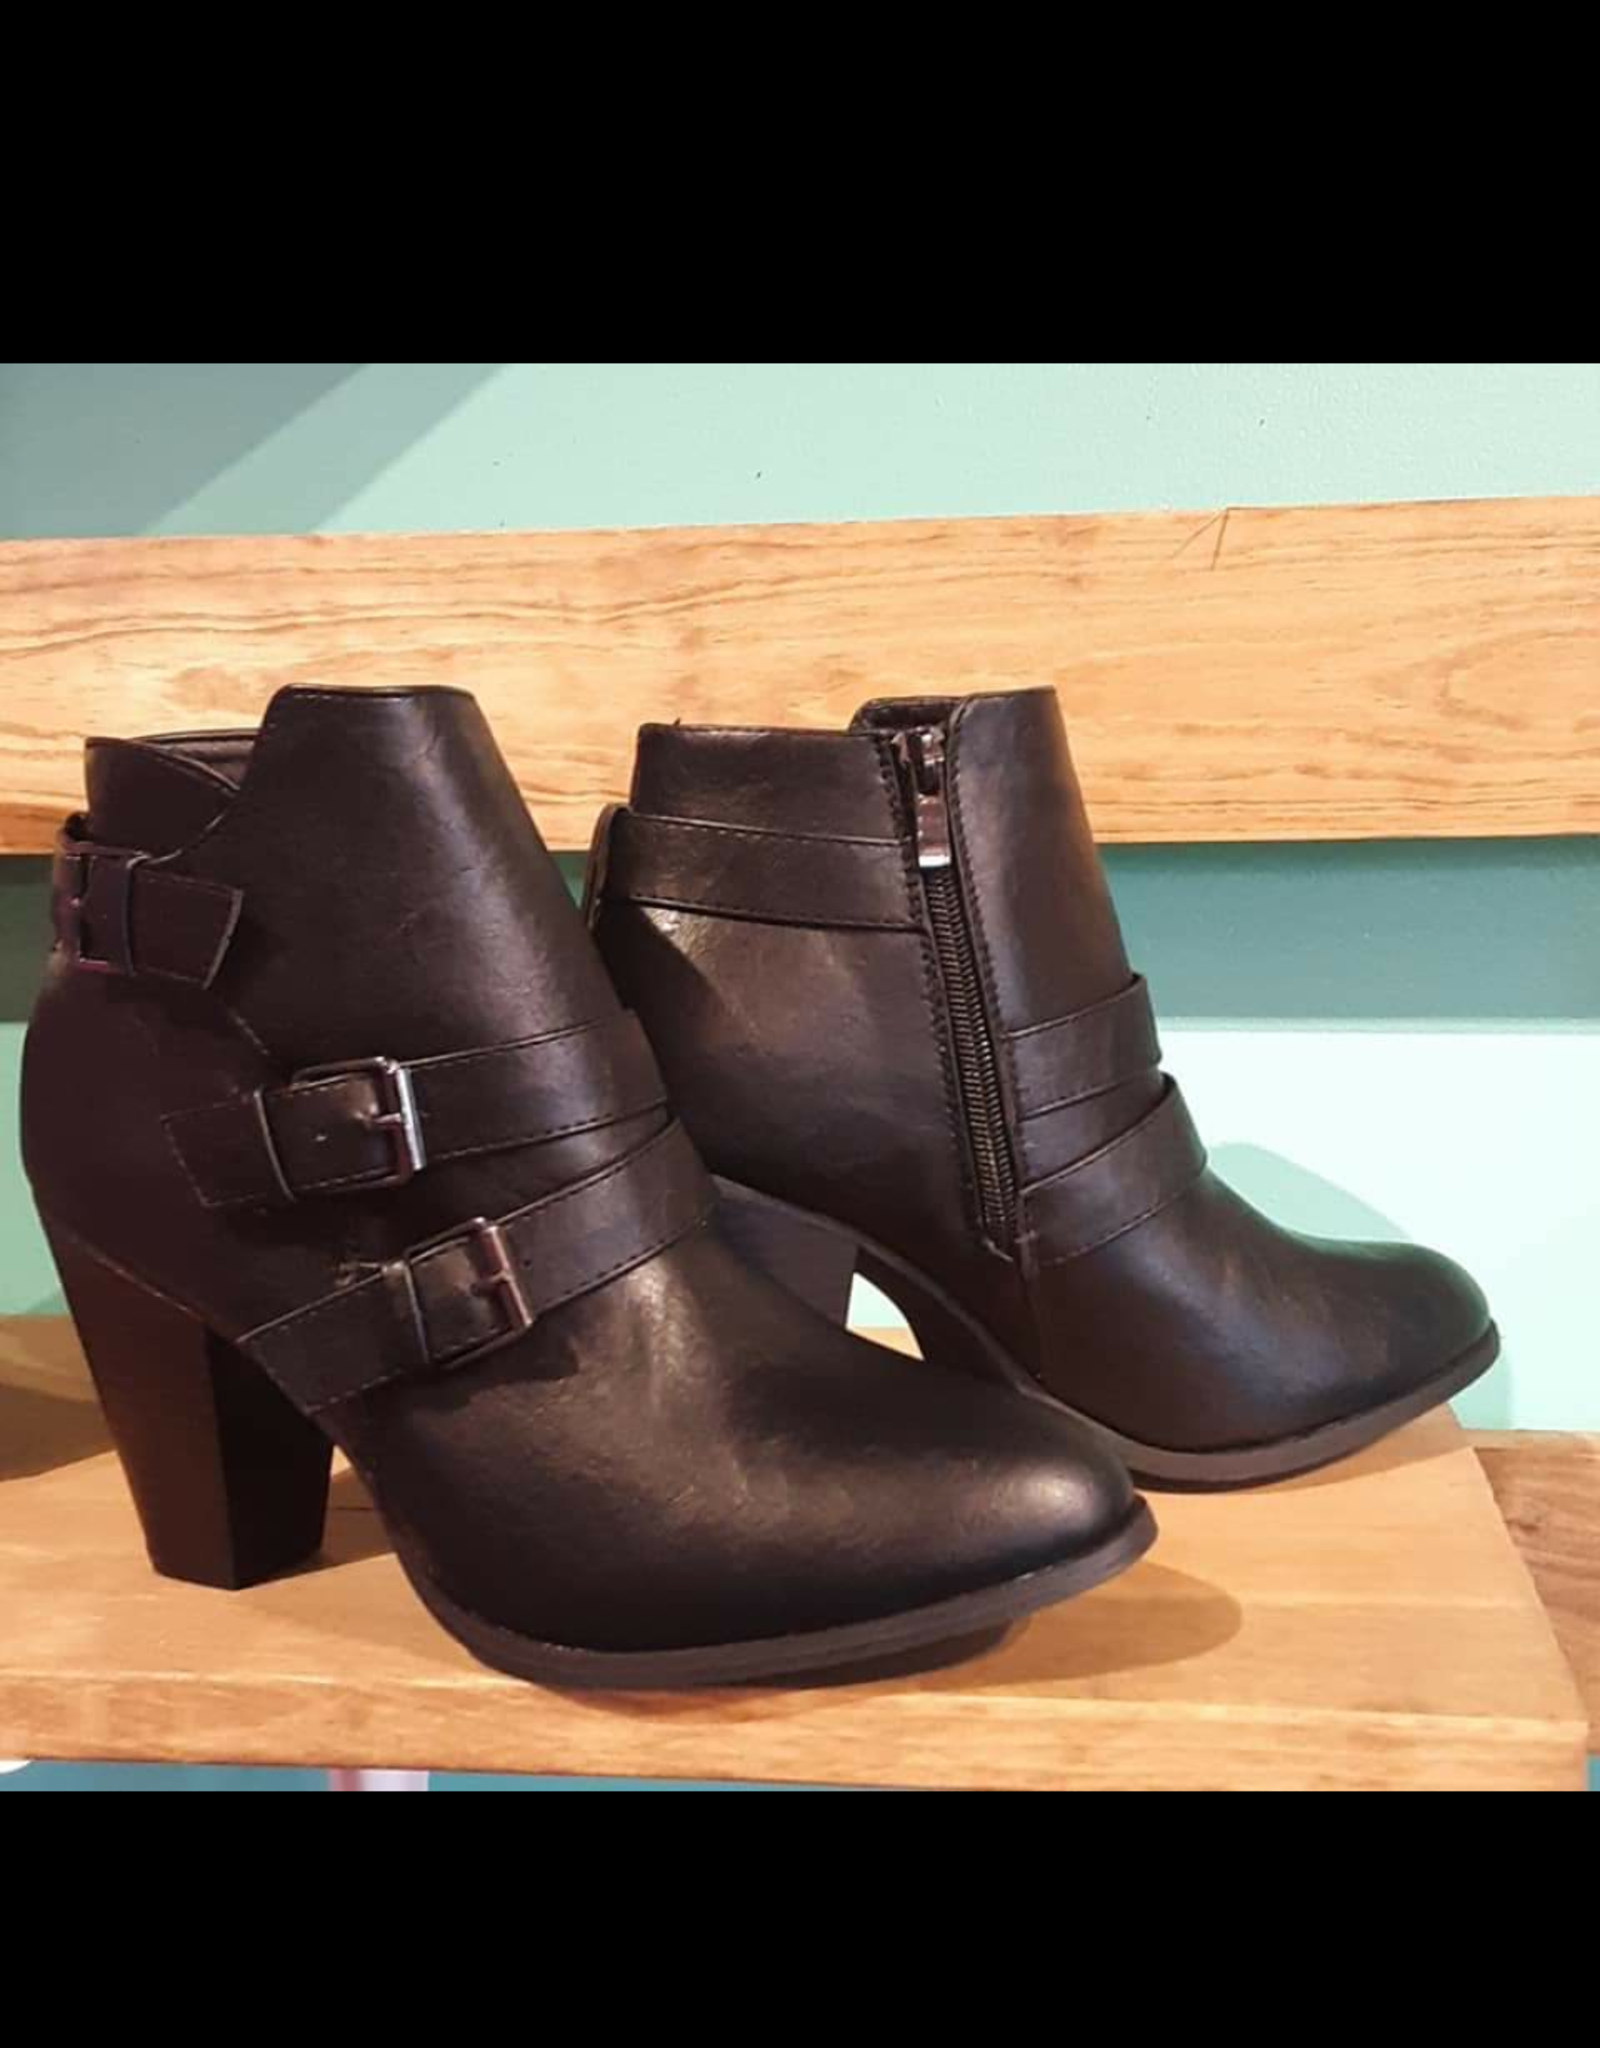 Buckle Accent Stacked Heel Back Zipper Booties